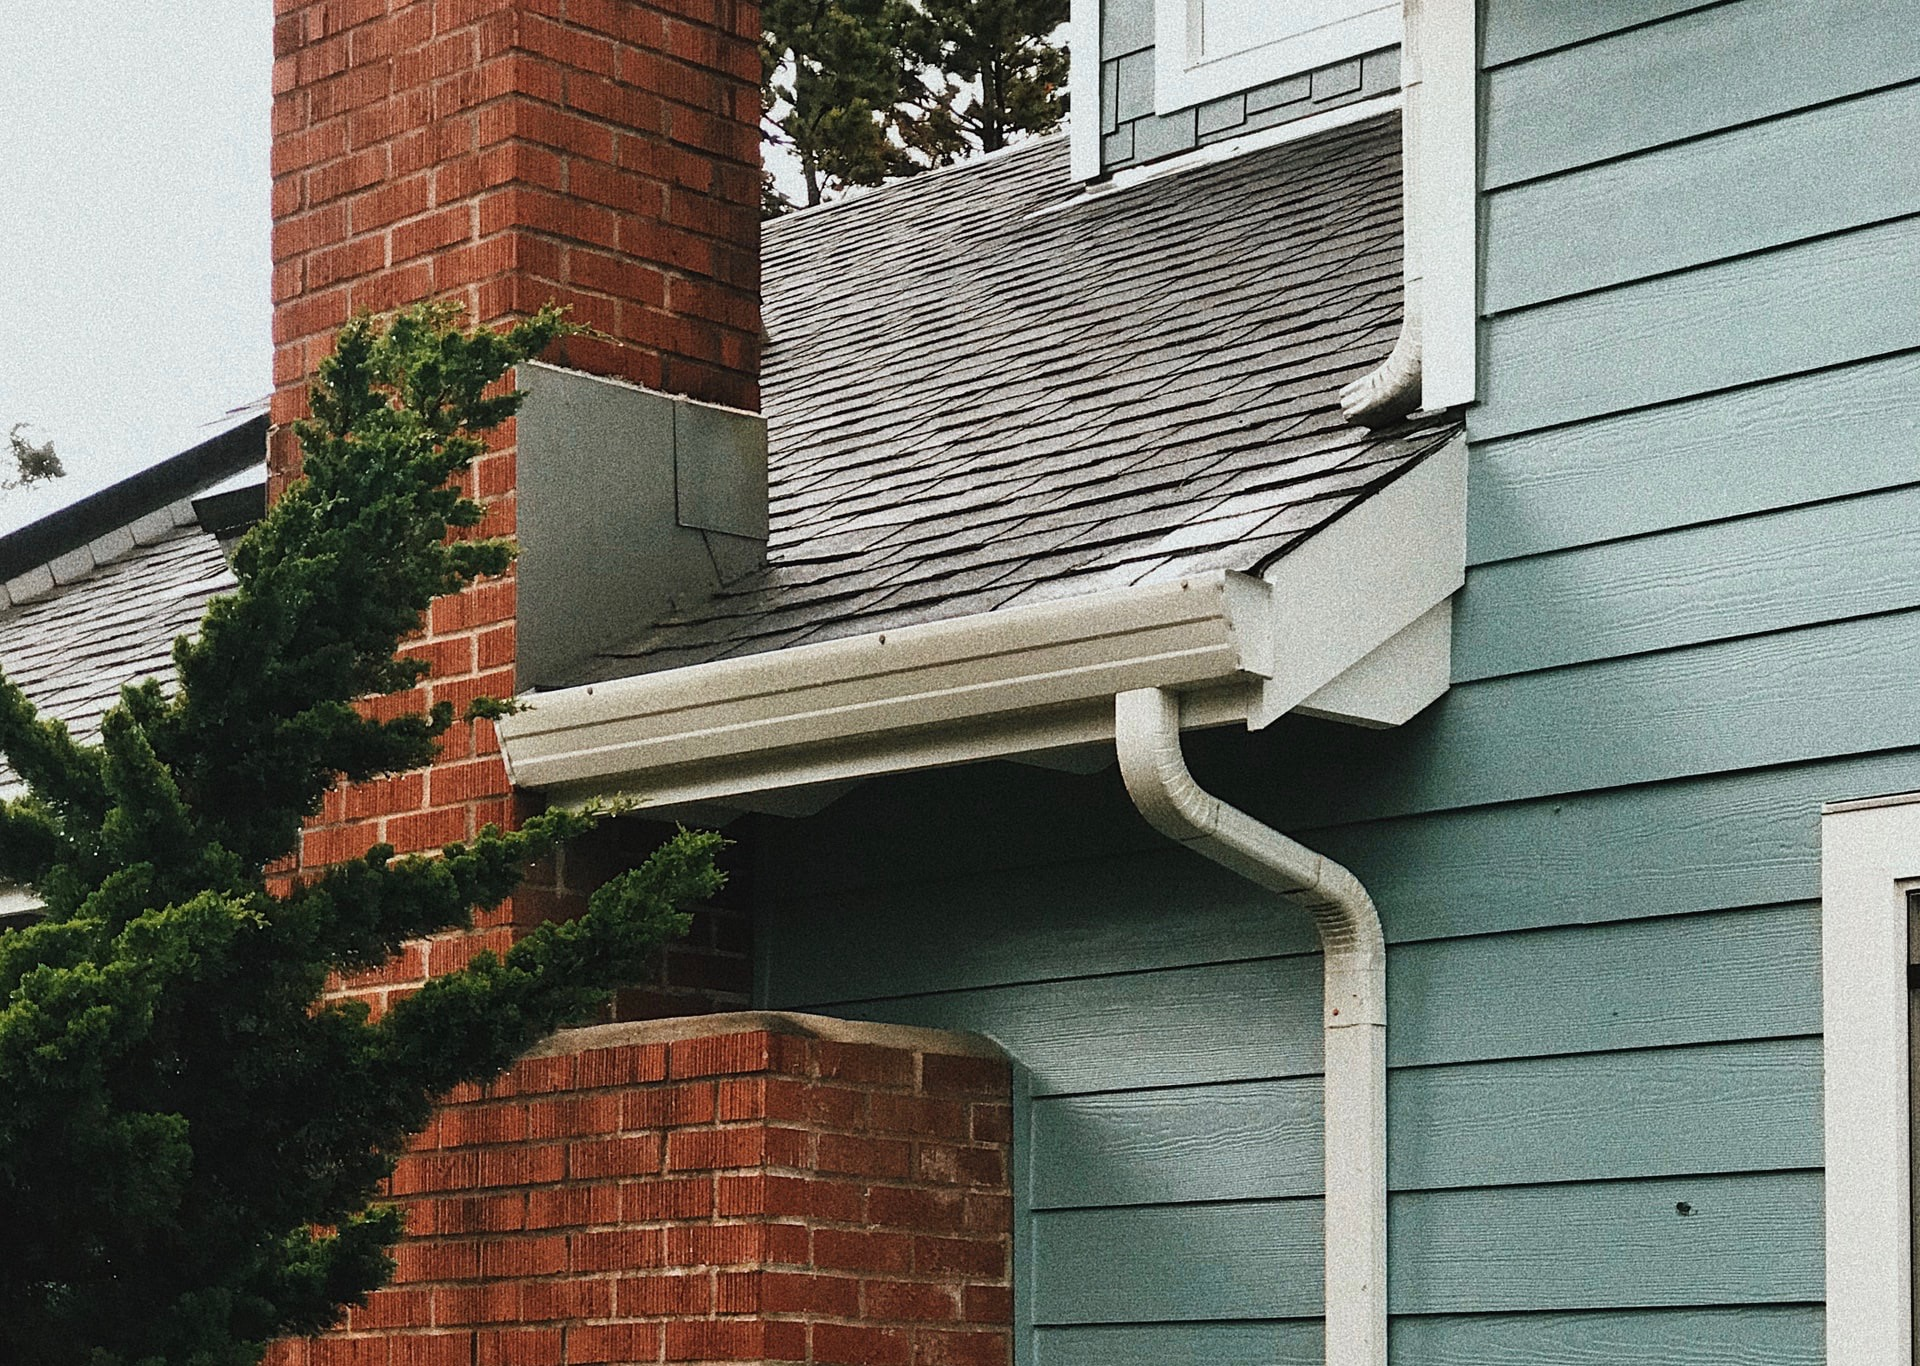 gutters and downspout on a house